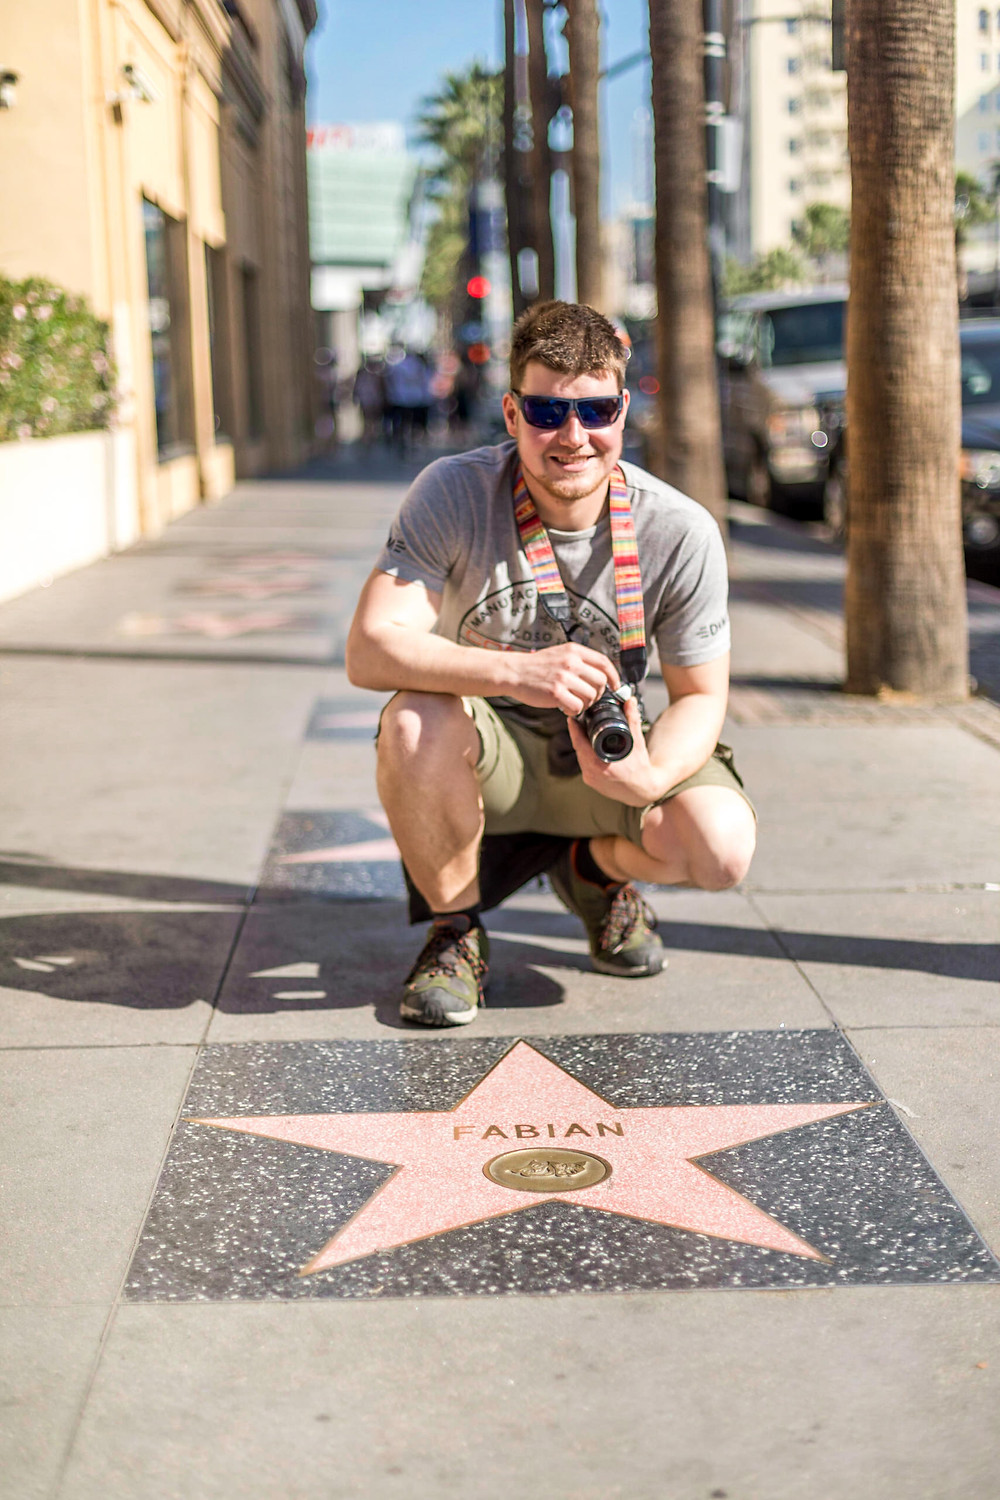 Fabian at the Walk of Fame in Los Angeles